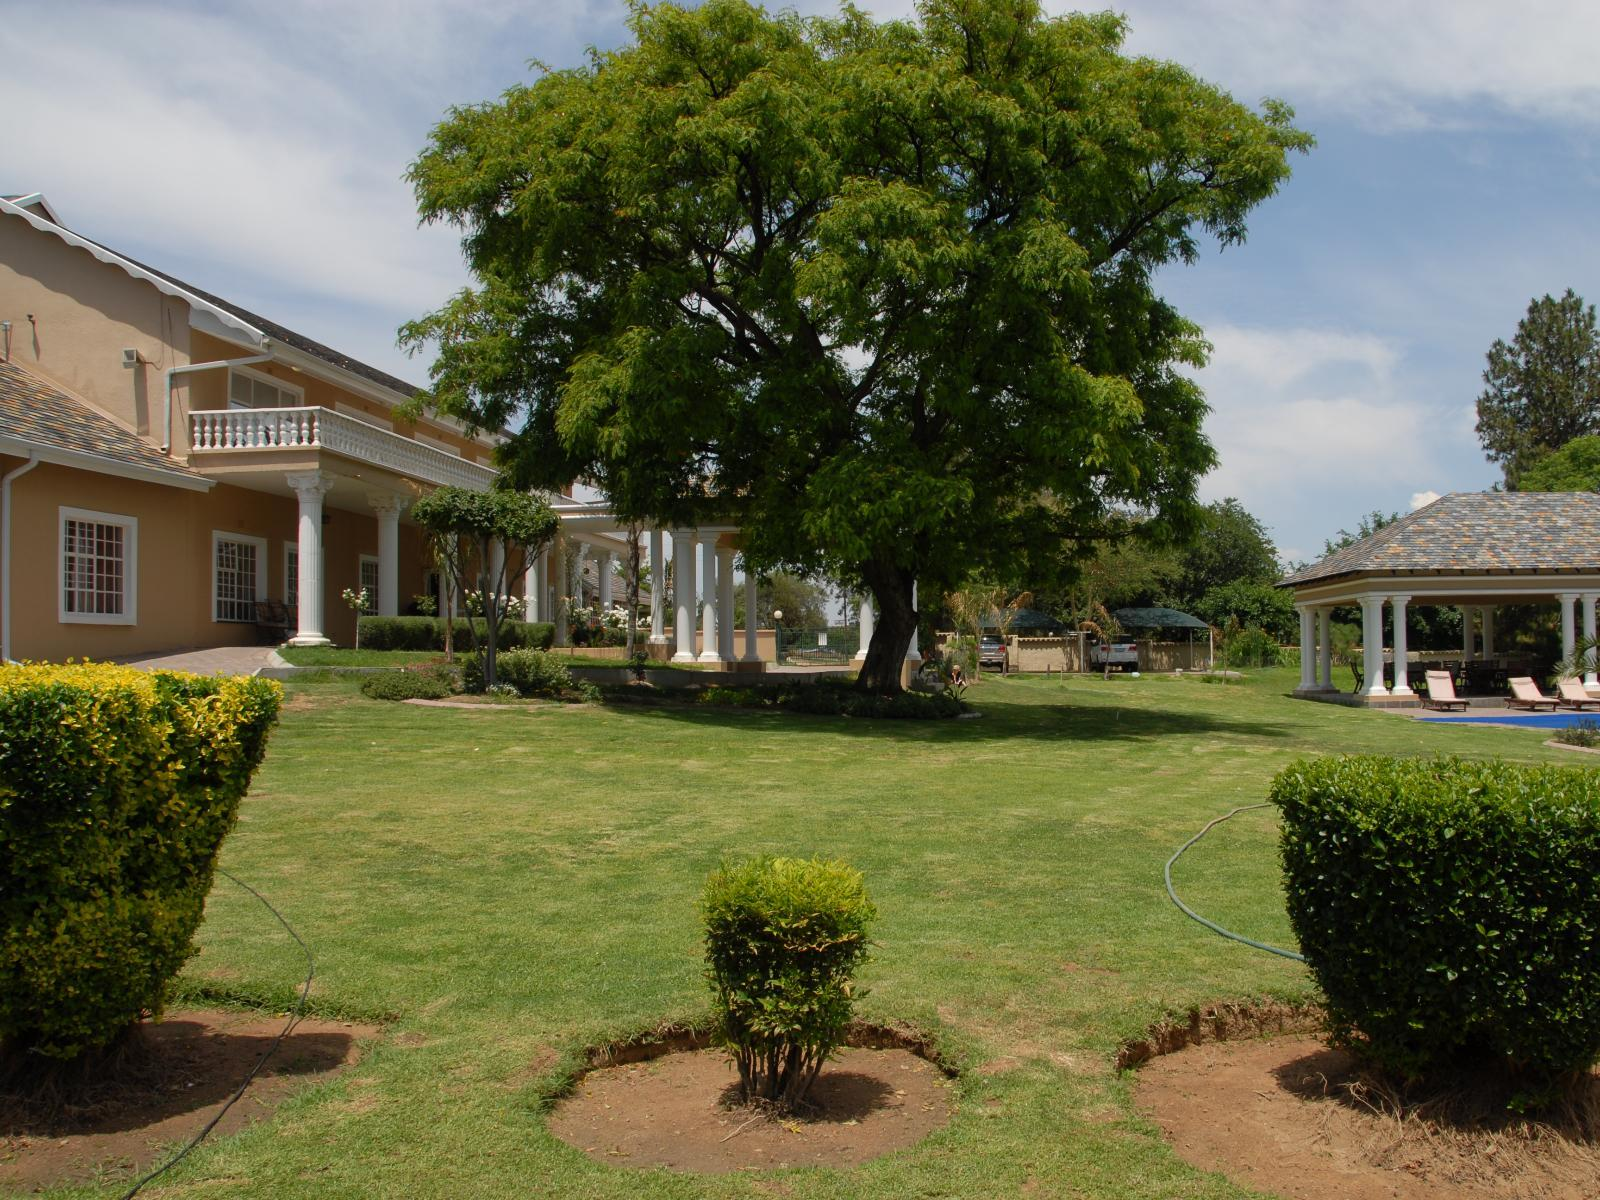 Attaché Guest House and spa